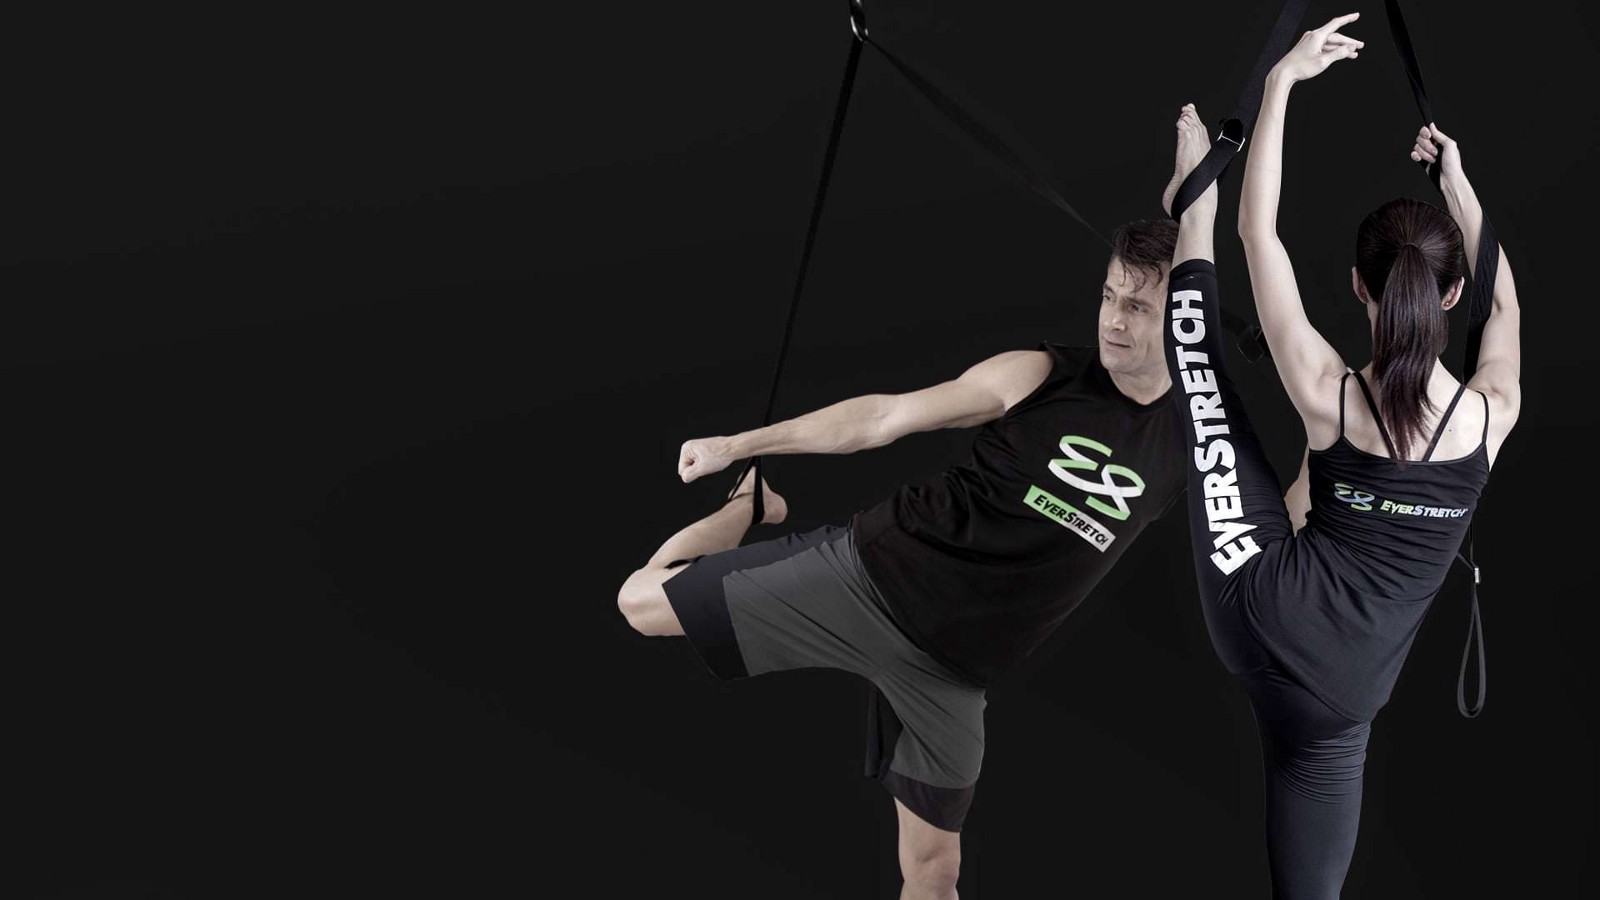 EverStretch is so simple it's genius for stretching, mobility, range of motion, and flexibility